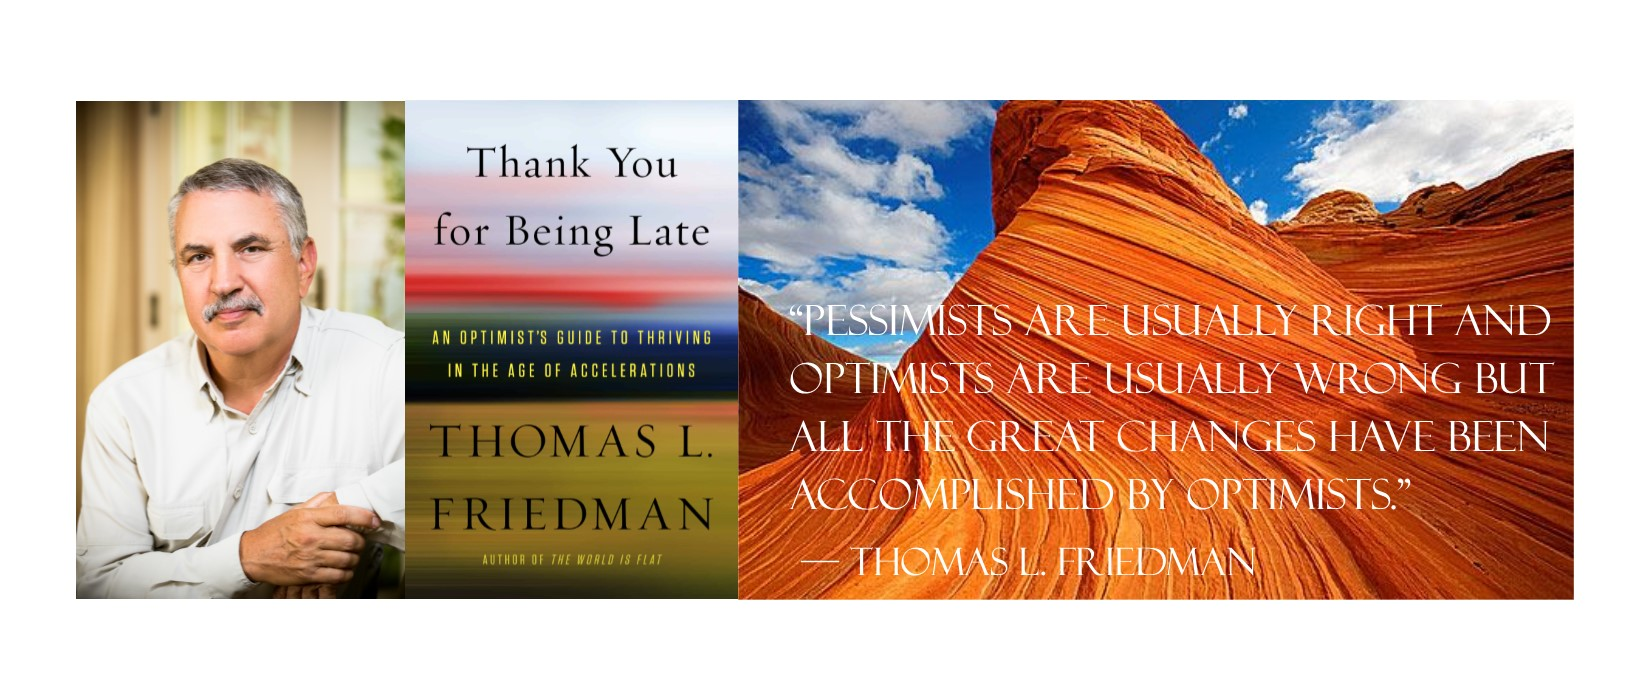 New York Times Best Selling Author Thomas L. Friedman to Visit Qualcomm